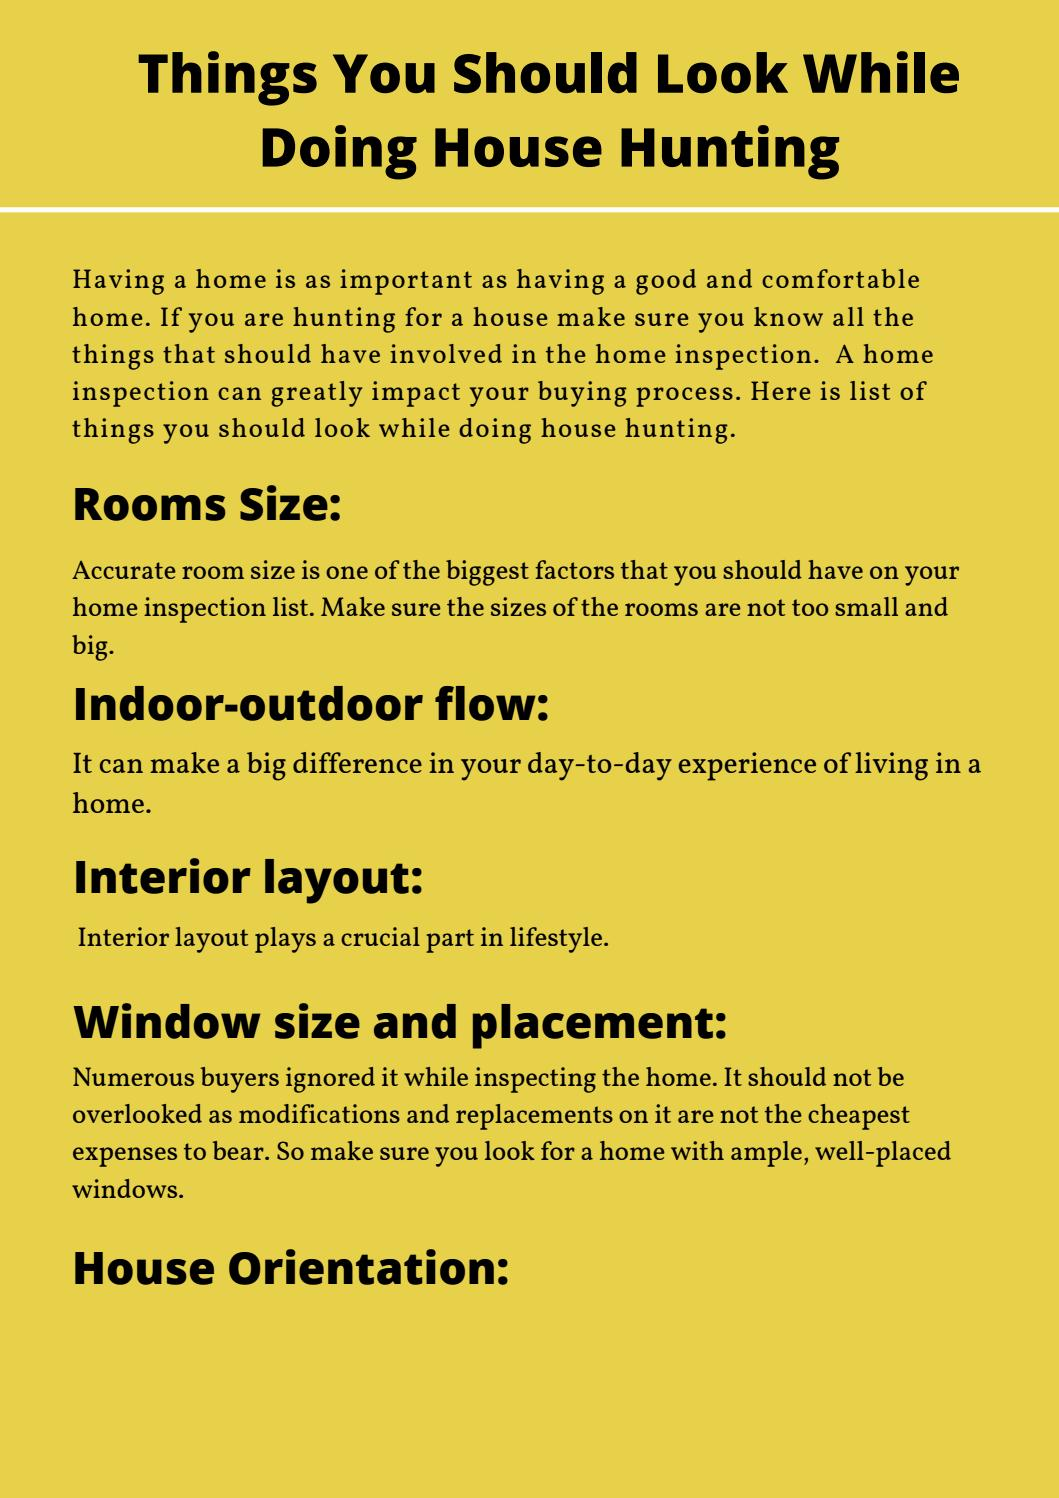 Things You Should Look While Doing House Hunting by FaxtExpert - issuu